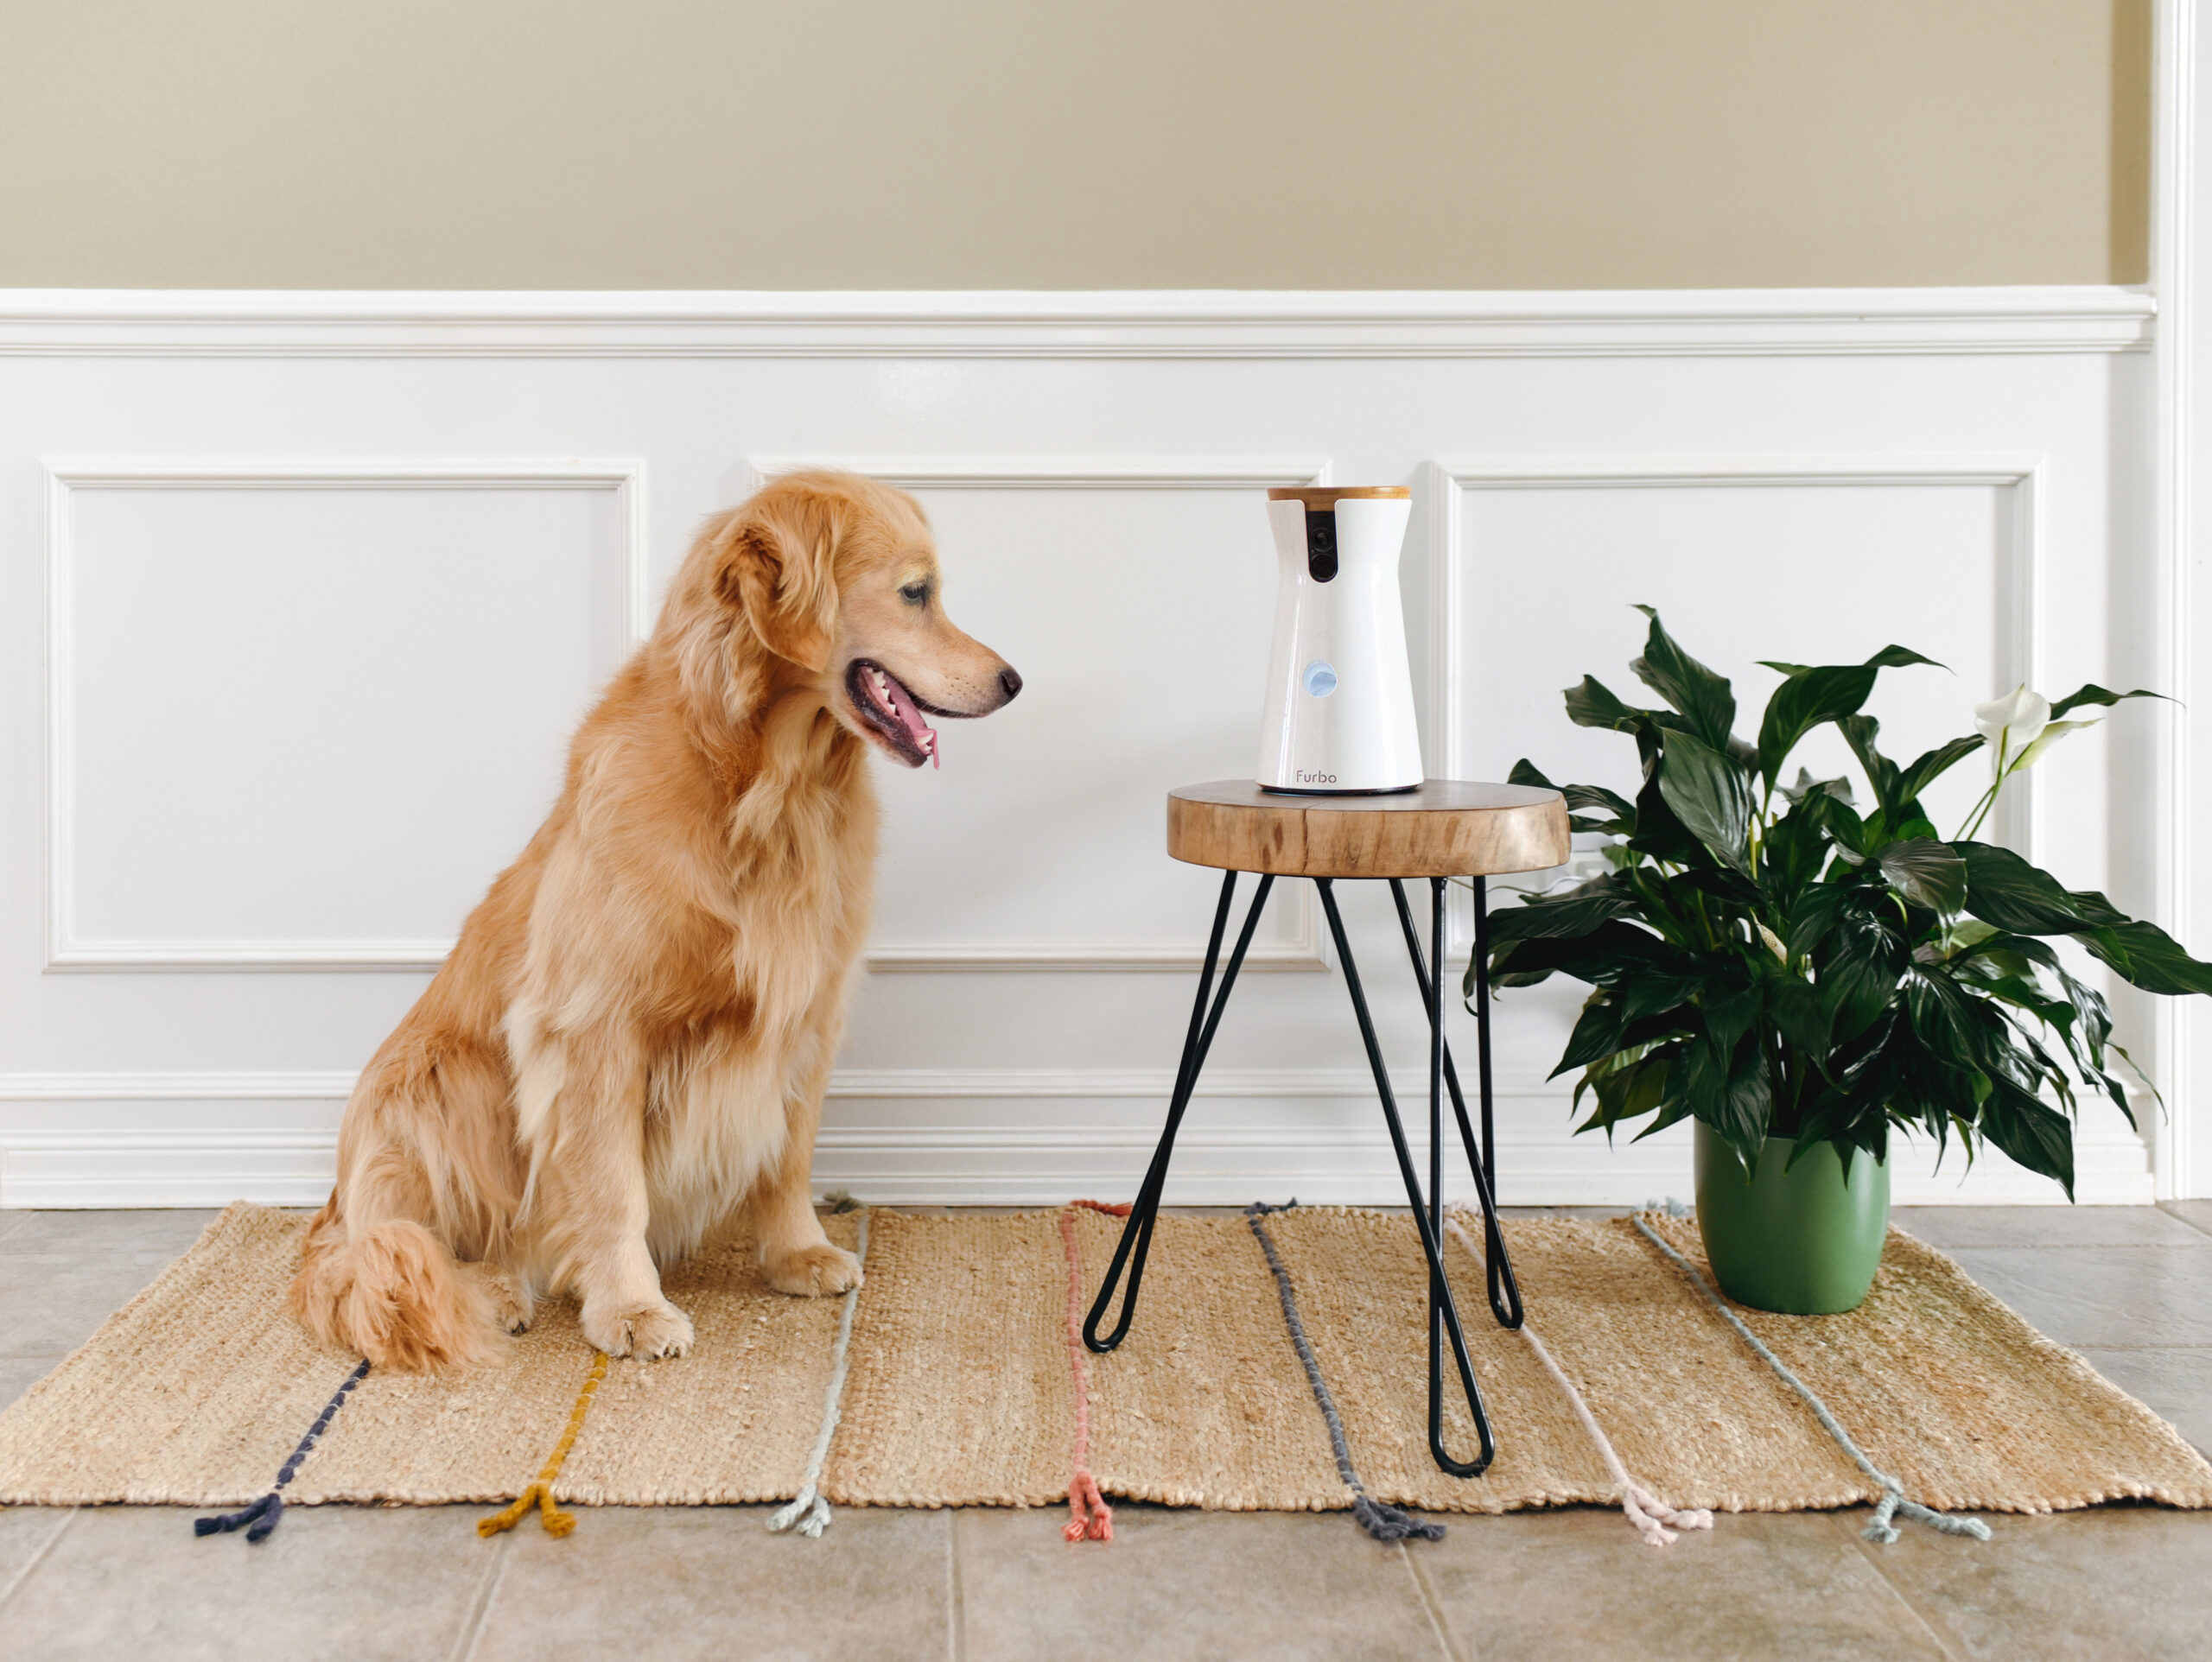 Gift your pet the gift of constant attention with Furbo's Smart Dog Camera